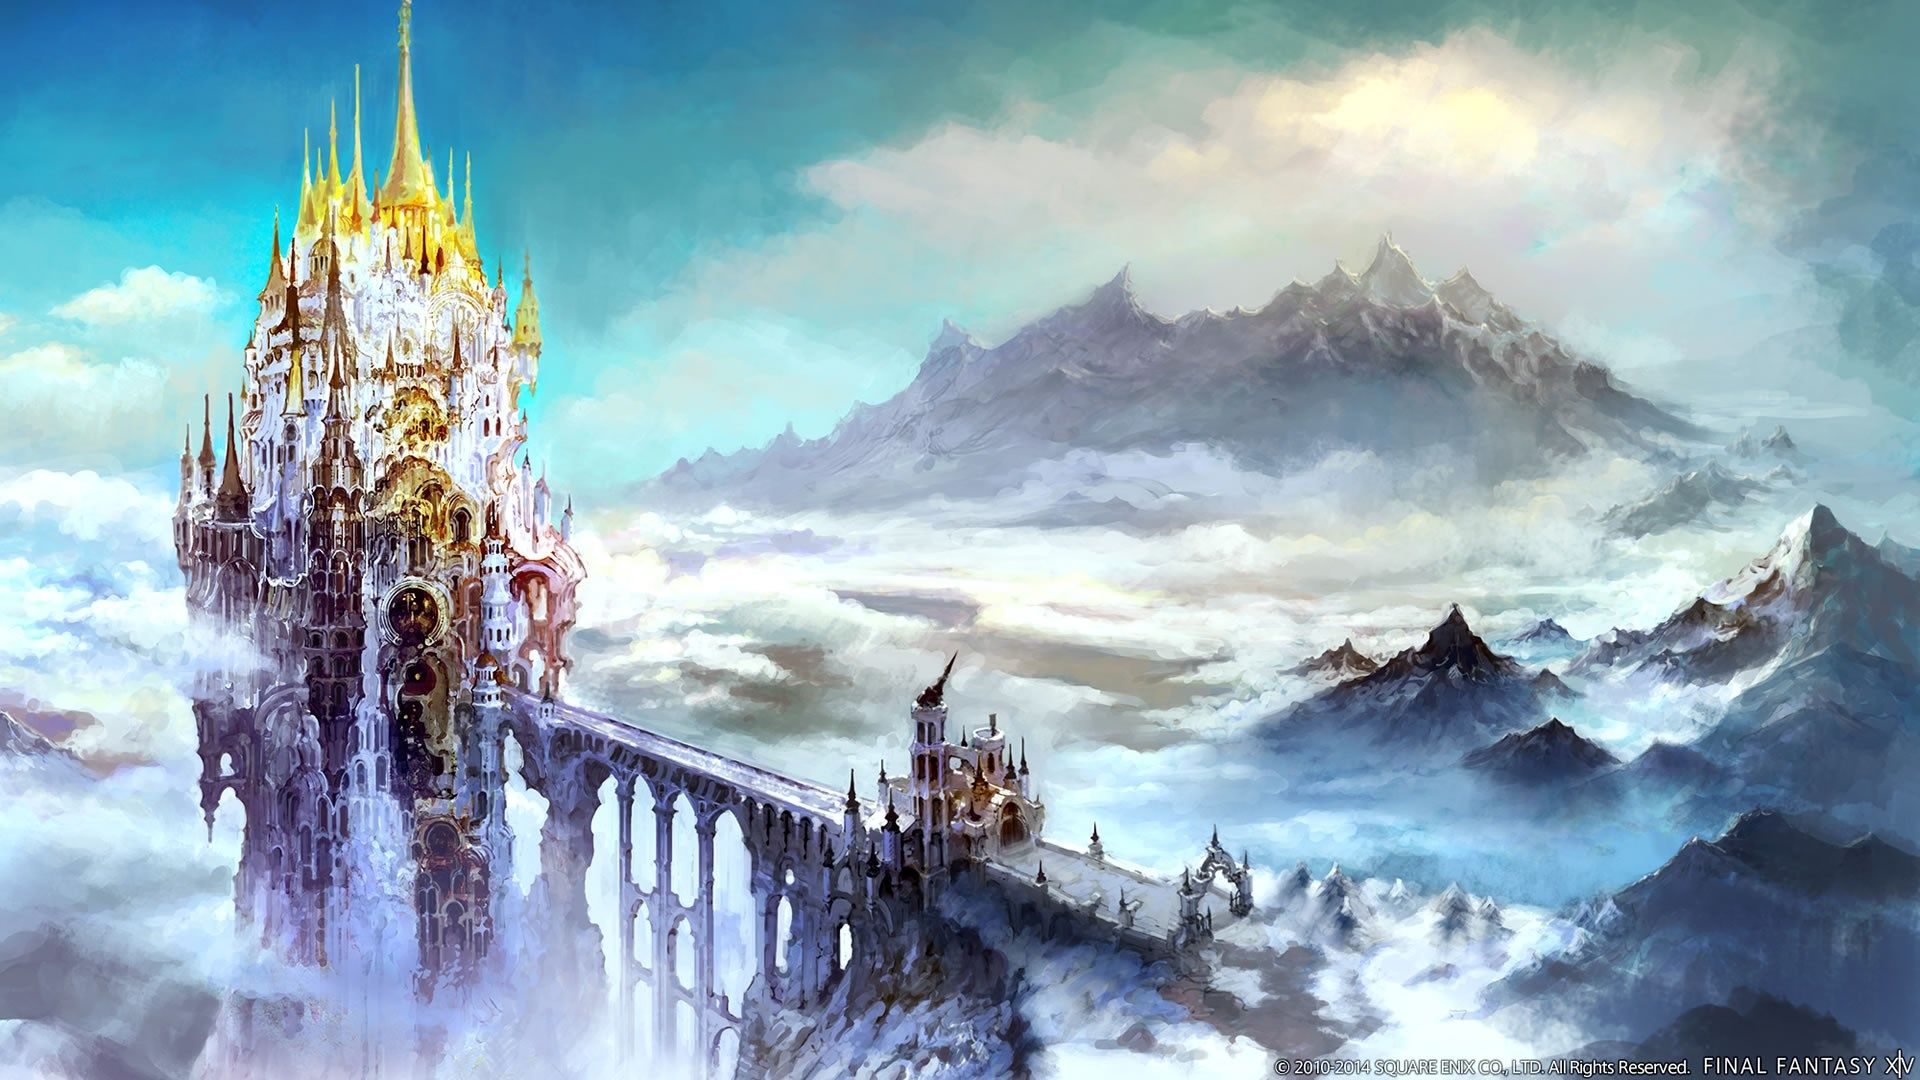 Ffxiv Wallpaper Hd Fantasy Concept Art Fantasy Landscape Final Fantasy Artwork